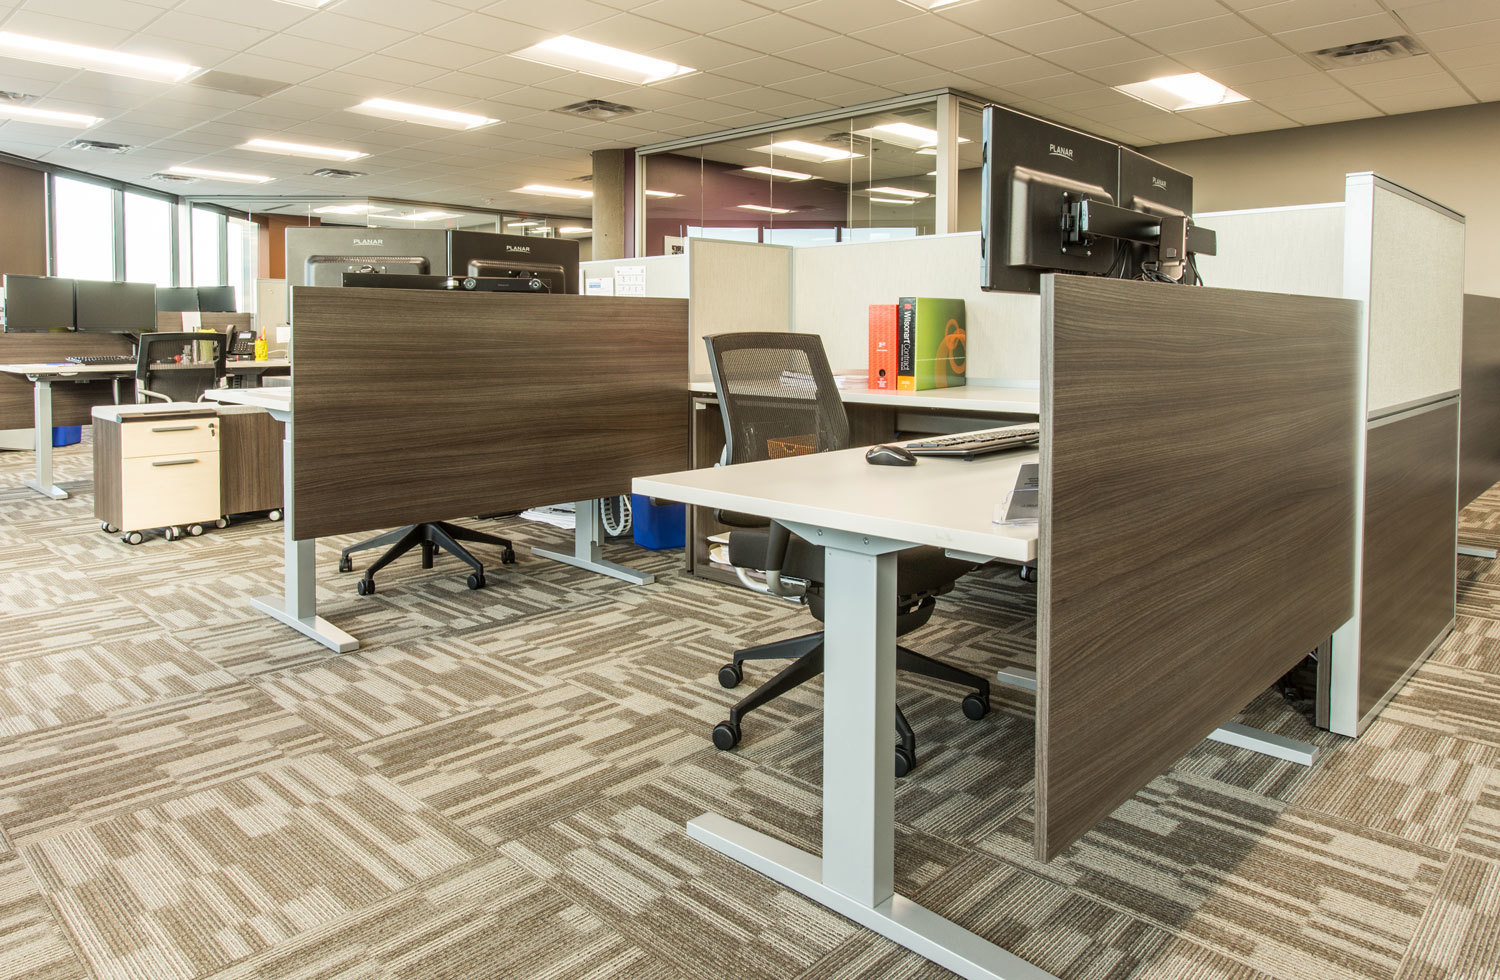 The workstation space layout encourages collaboration and focused work at ISG in Bloomington, Minnesota, furnished by iSpace Environments.